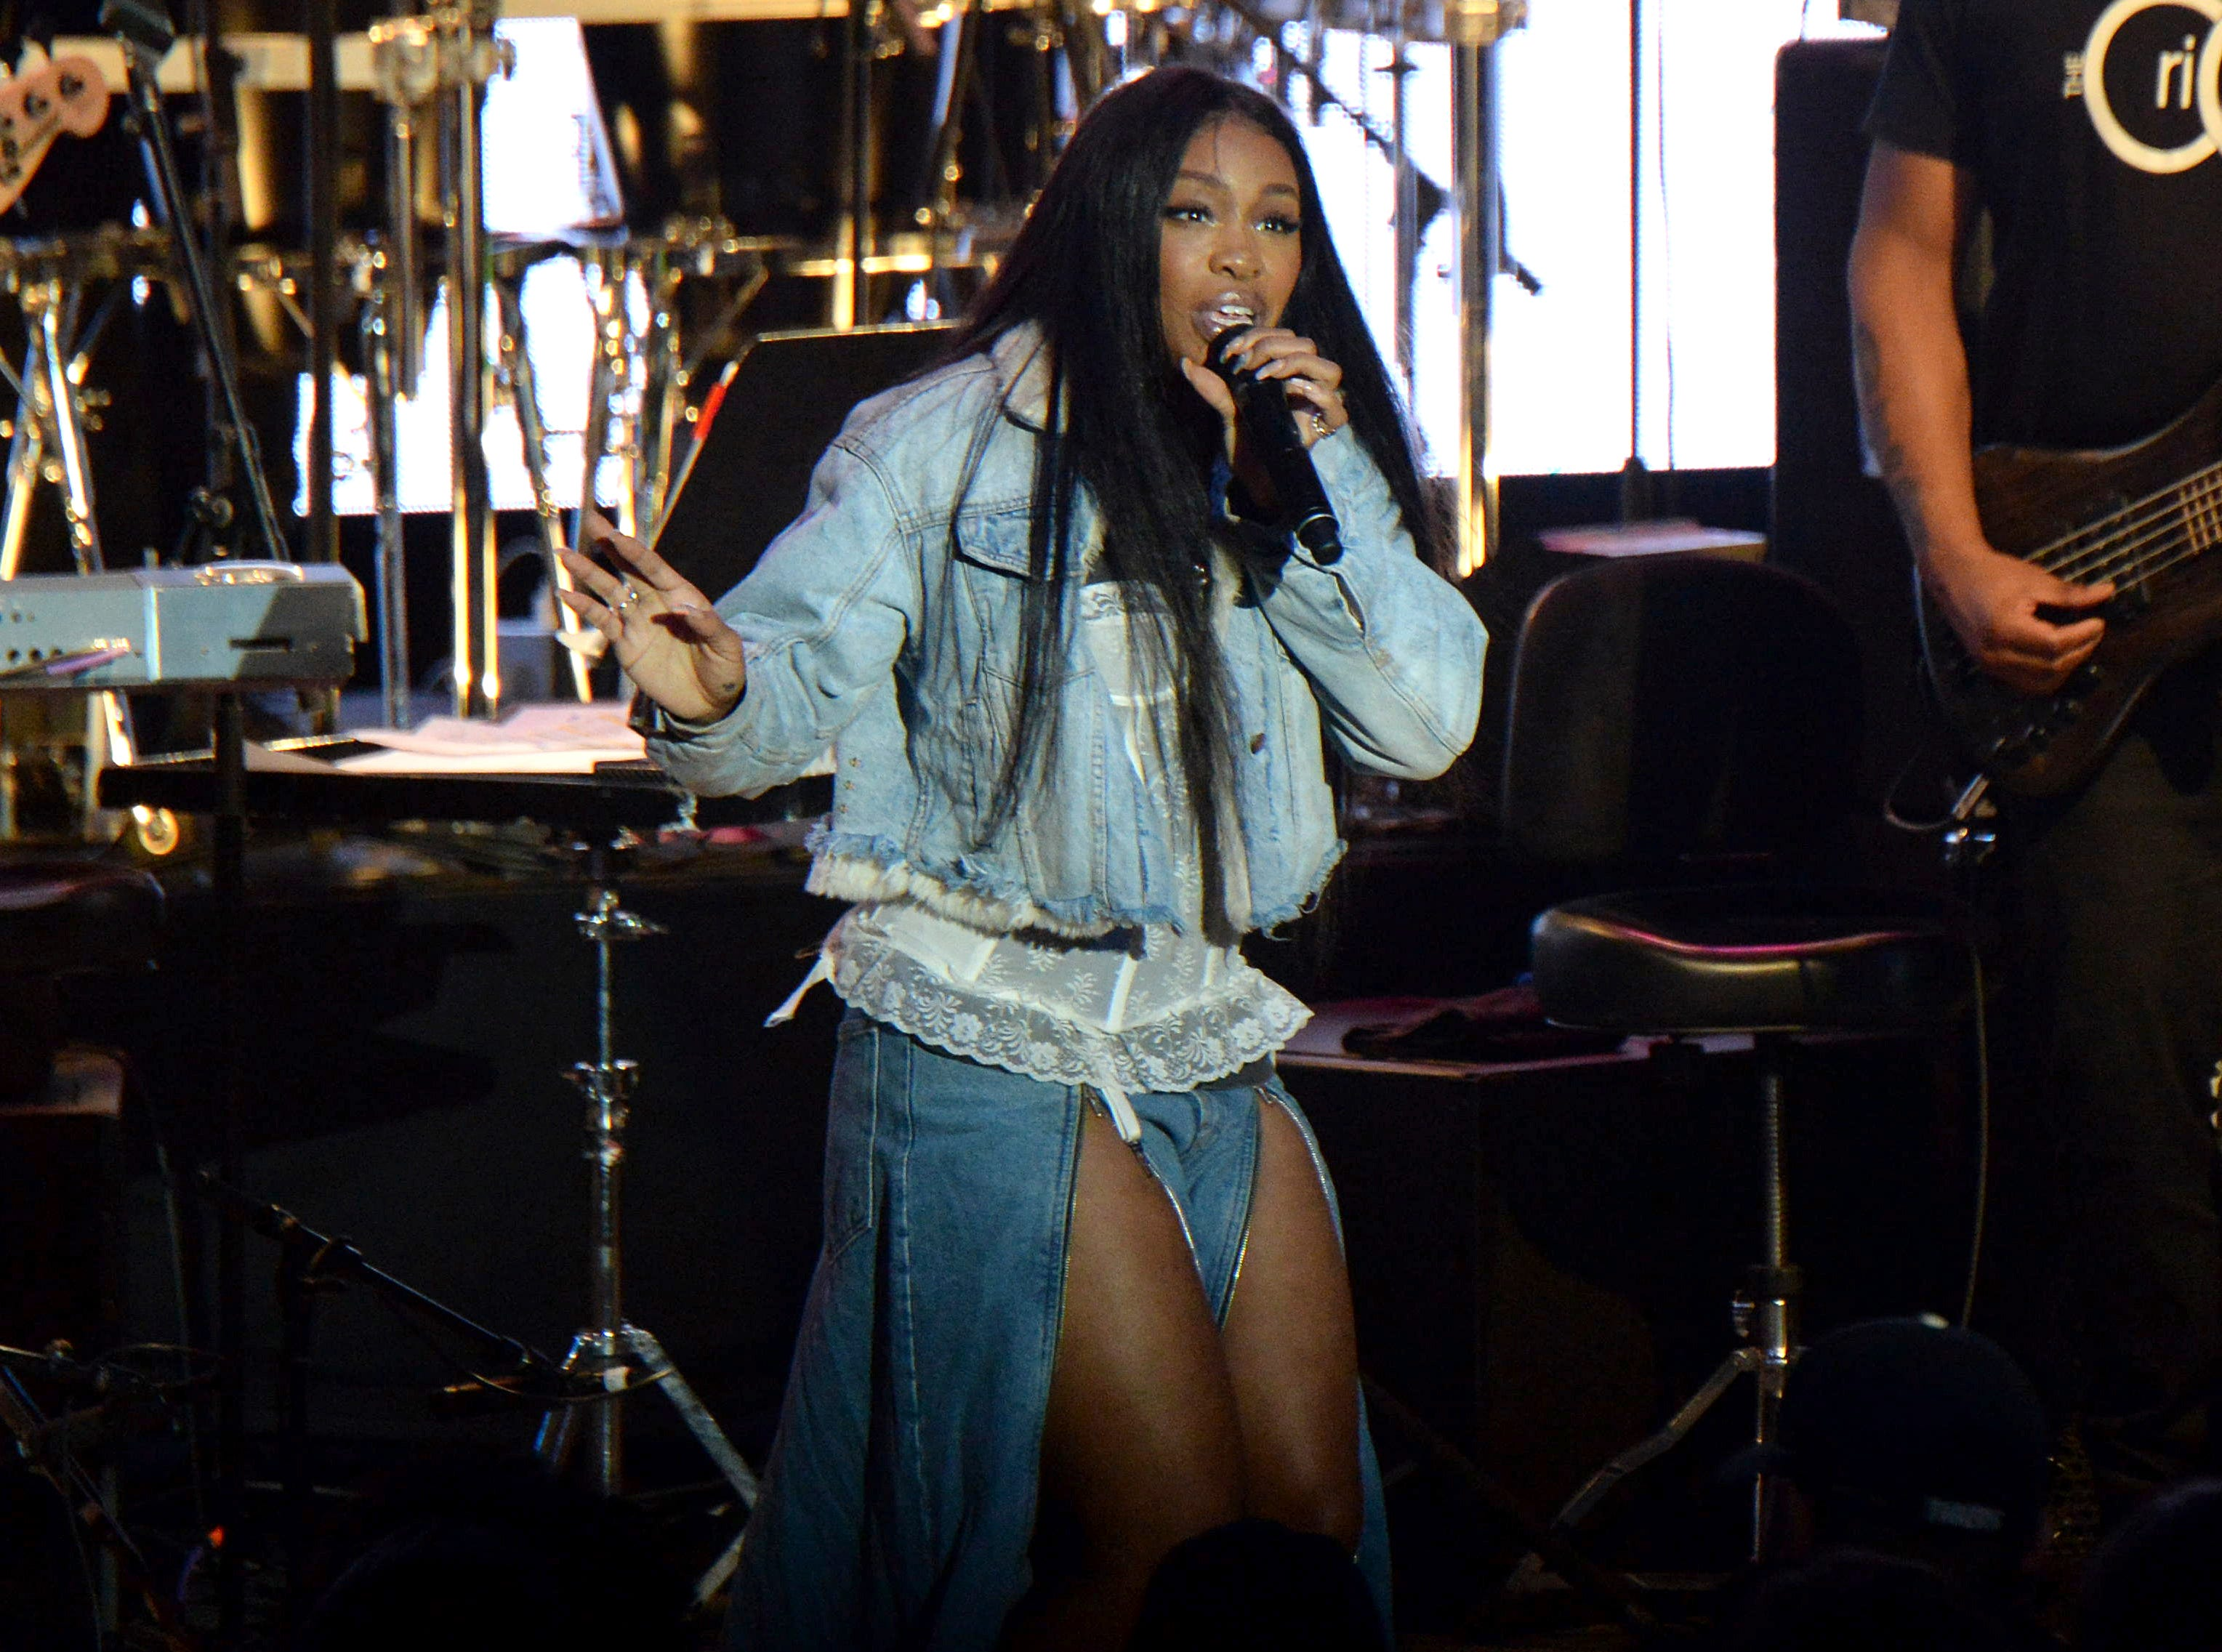 SZA performs during the tribute event Mac Miller: A Celebration of Life on Wednesday, Oct. 31, 2018, at the Greek Theatre in Los Angeles. (Photo by Amy Harris/Invision/AP) ORG XMIT: CAPM111